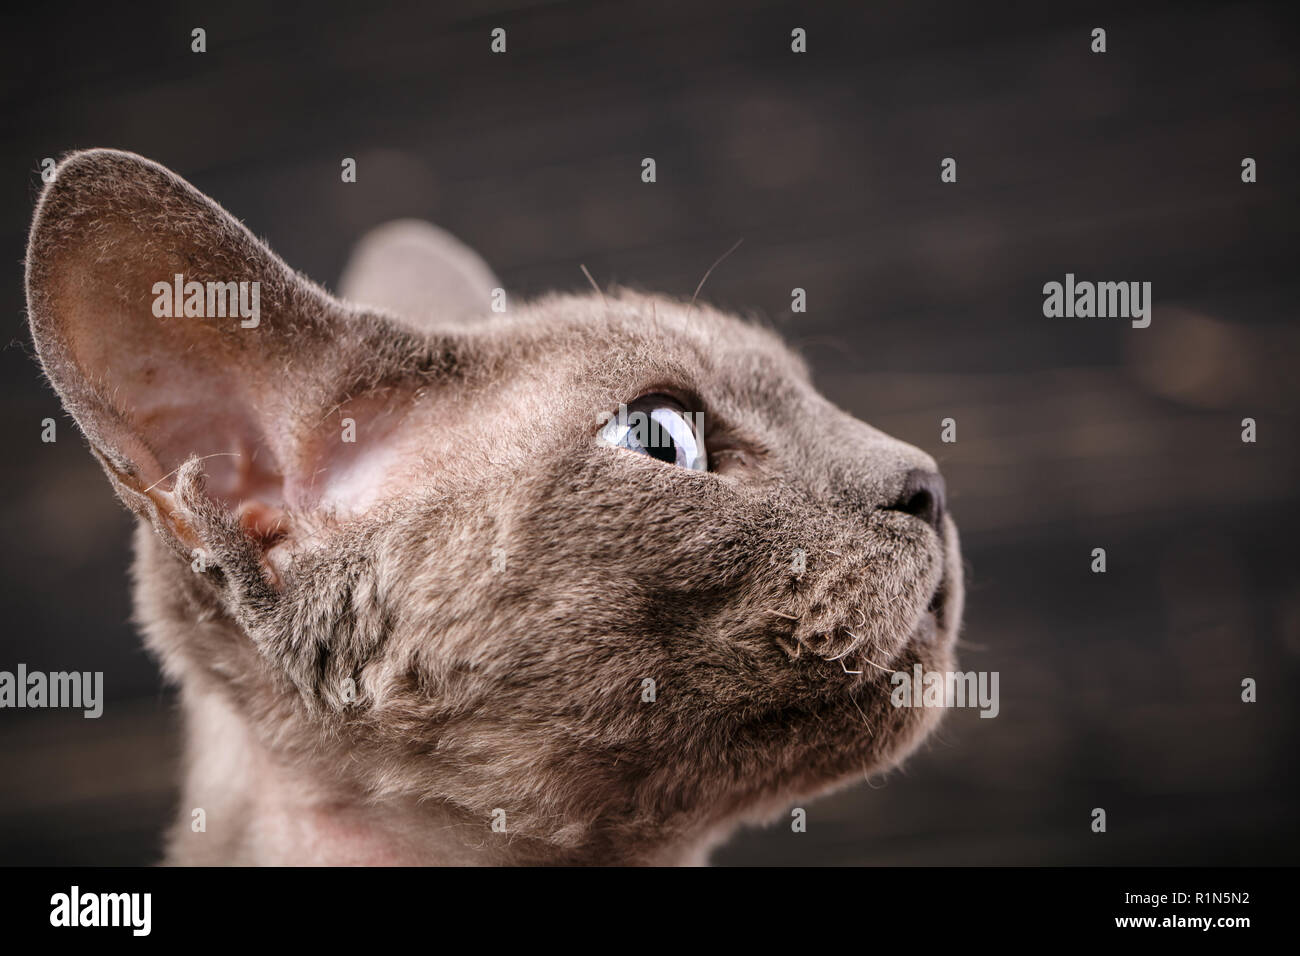 Devon-rex cat close-up portrait. Exhibition of cats concept. - Stock Image